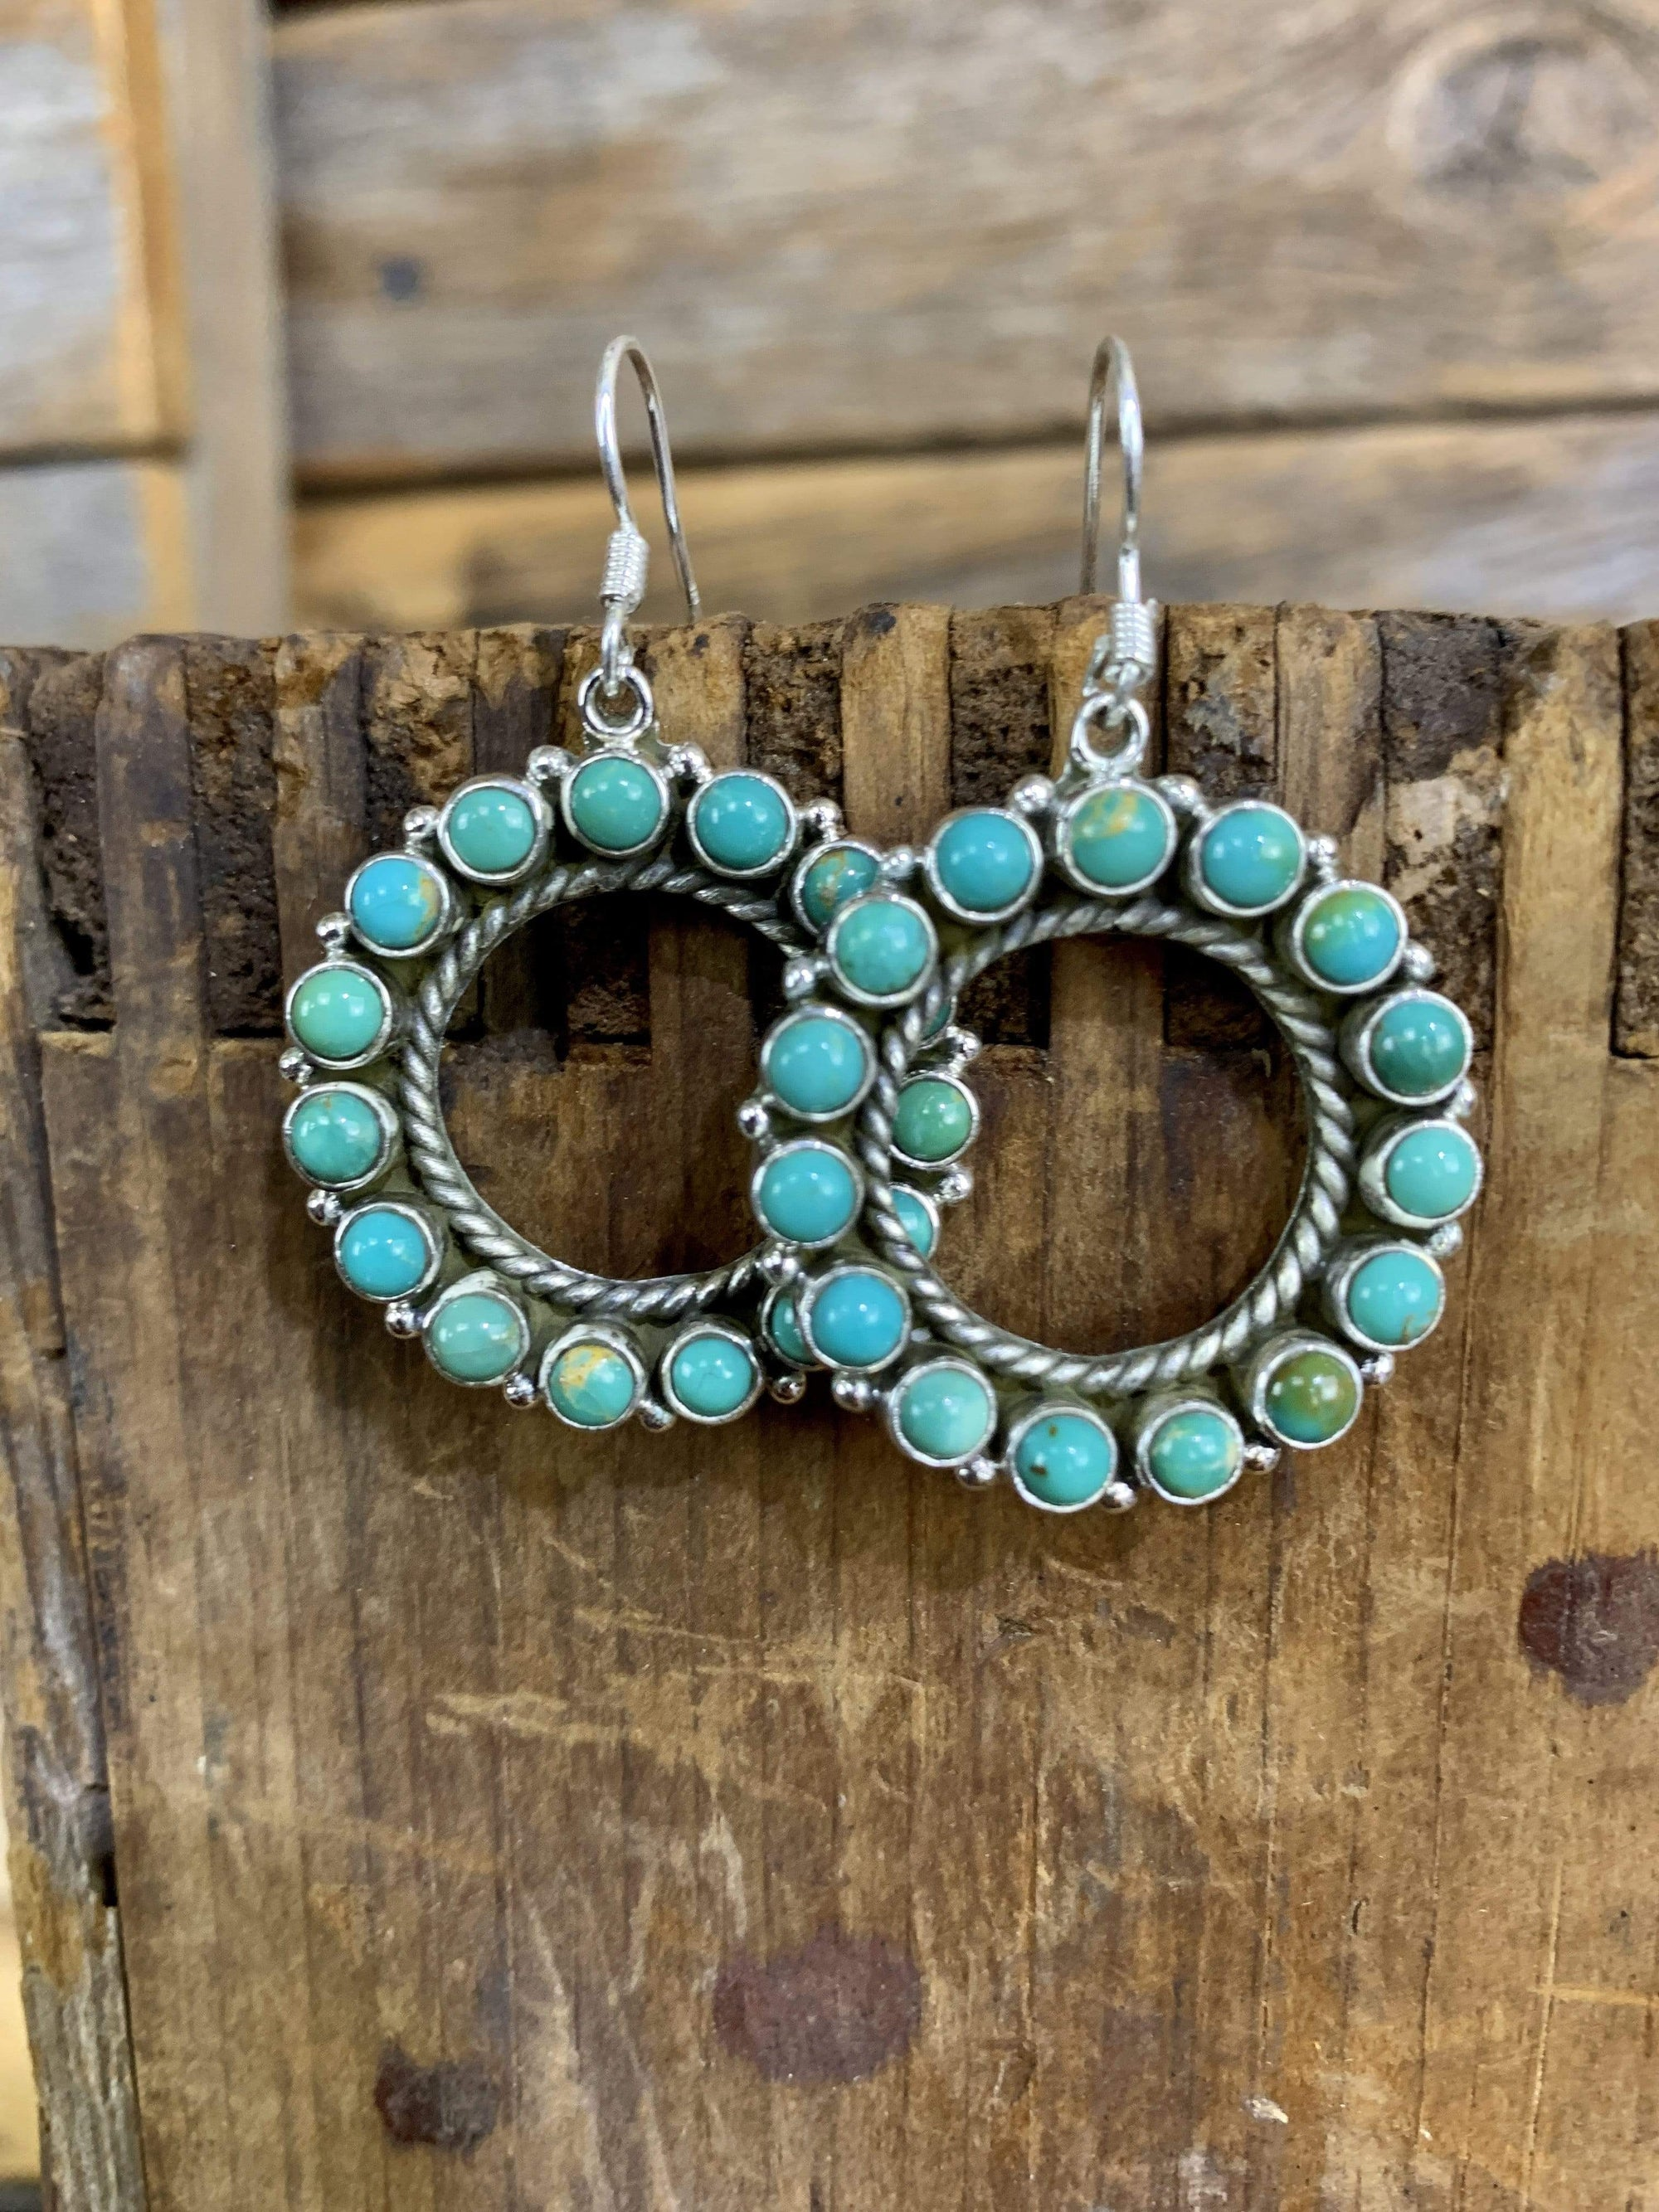 Accessorize In Style Sterling Earrings B Circle Of Friends Turquoise & Sterling Ear Wires